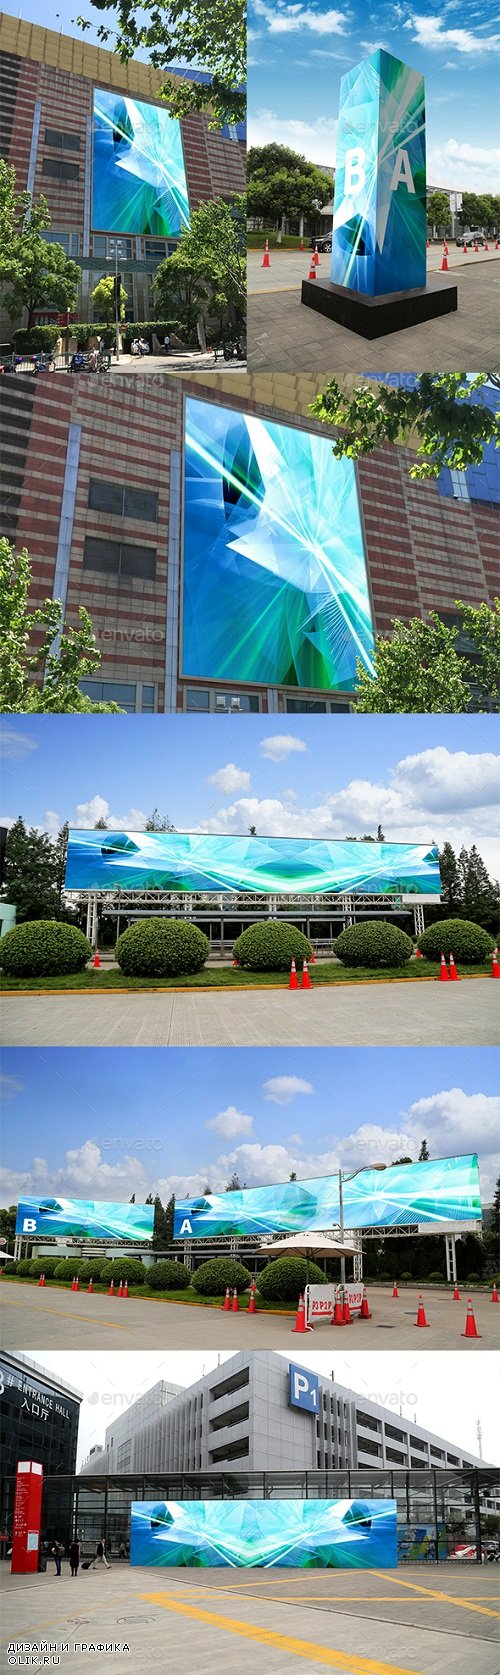 5 Outdoor Advertising Displays Mock-Ups - 22841864